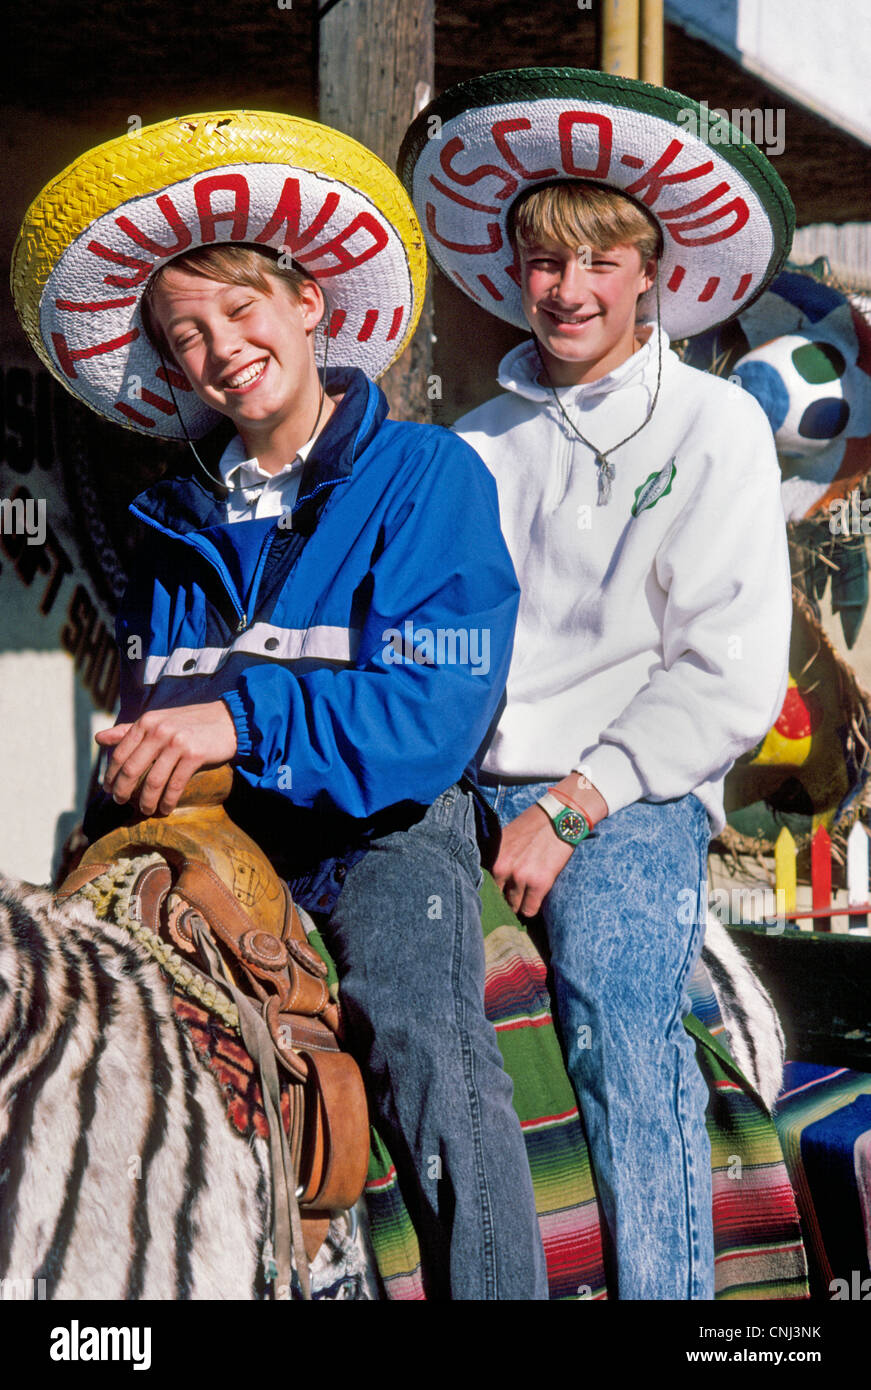 Two smiling American boys mount a donkey striped like a zebra to pose for  photos in silly Mexican sombrero hats during their visit to Tijuana c9d469763ed